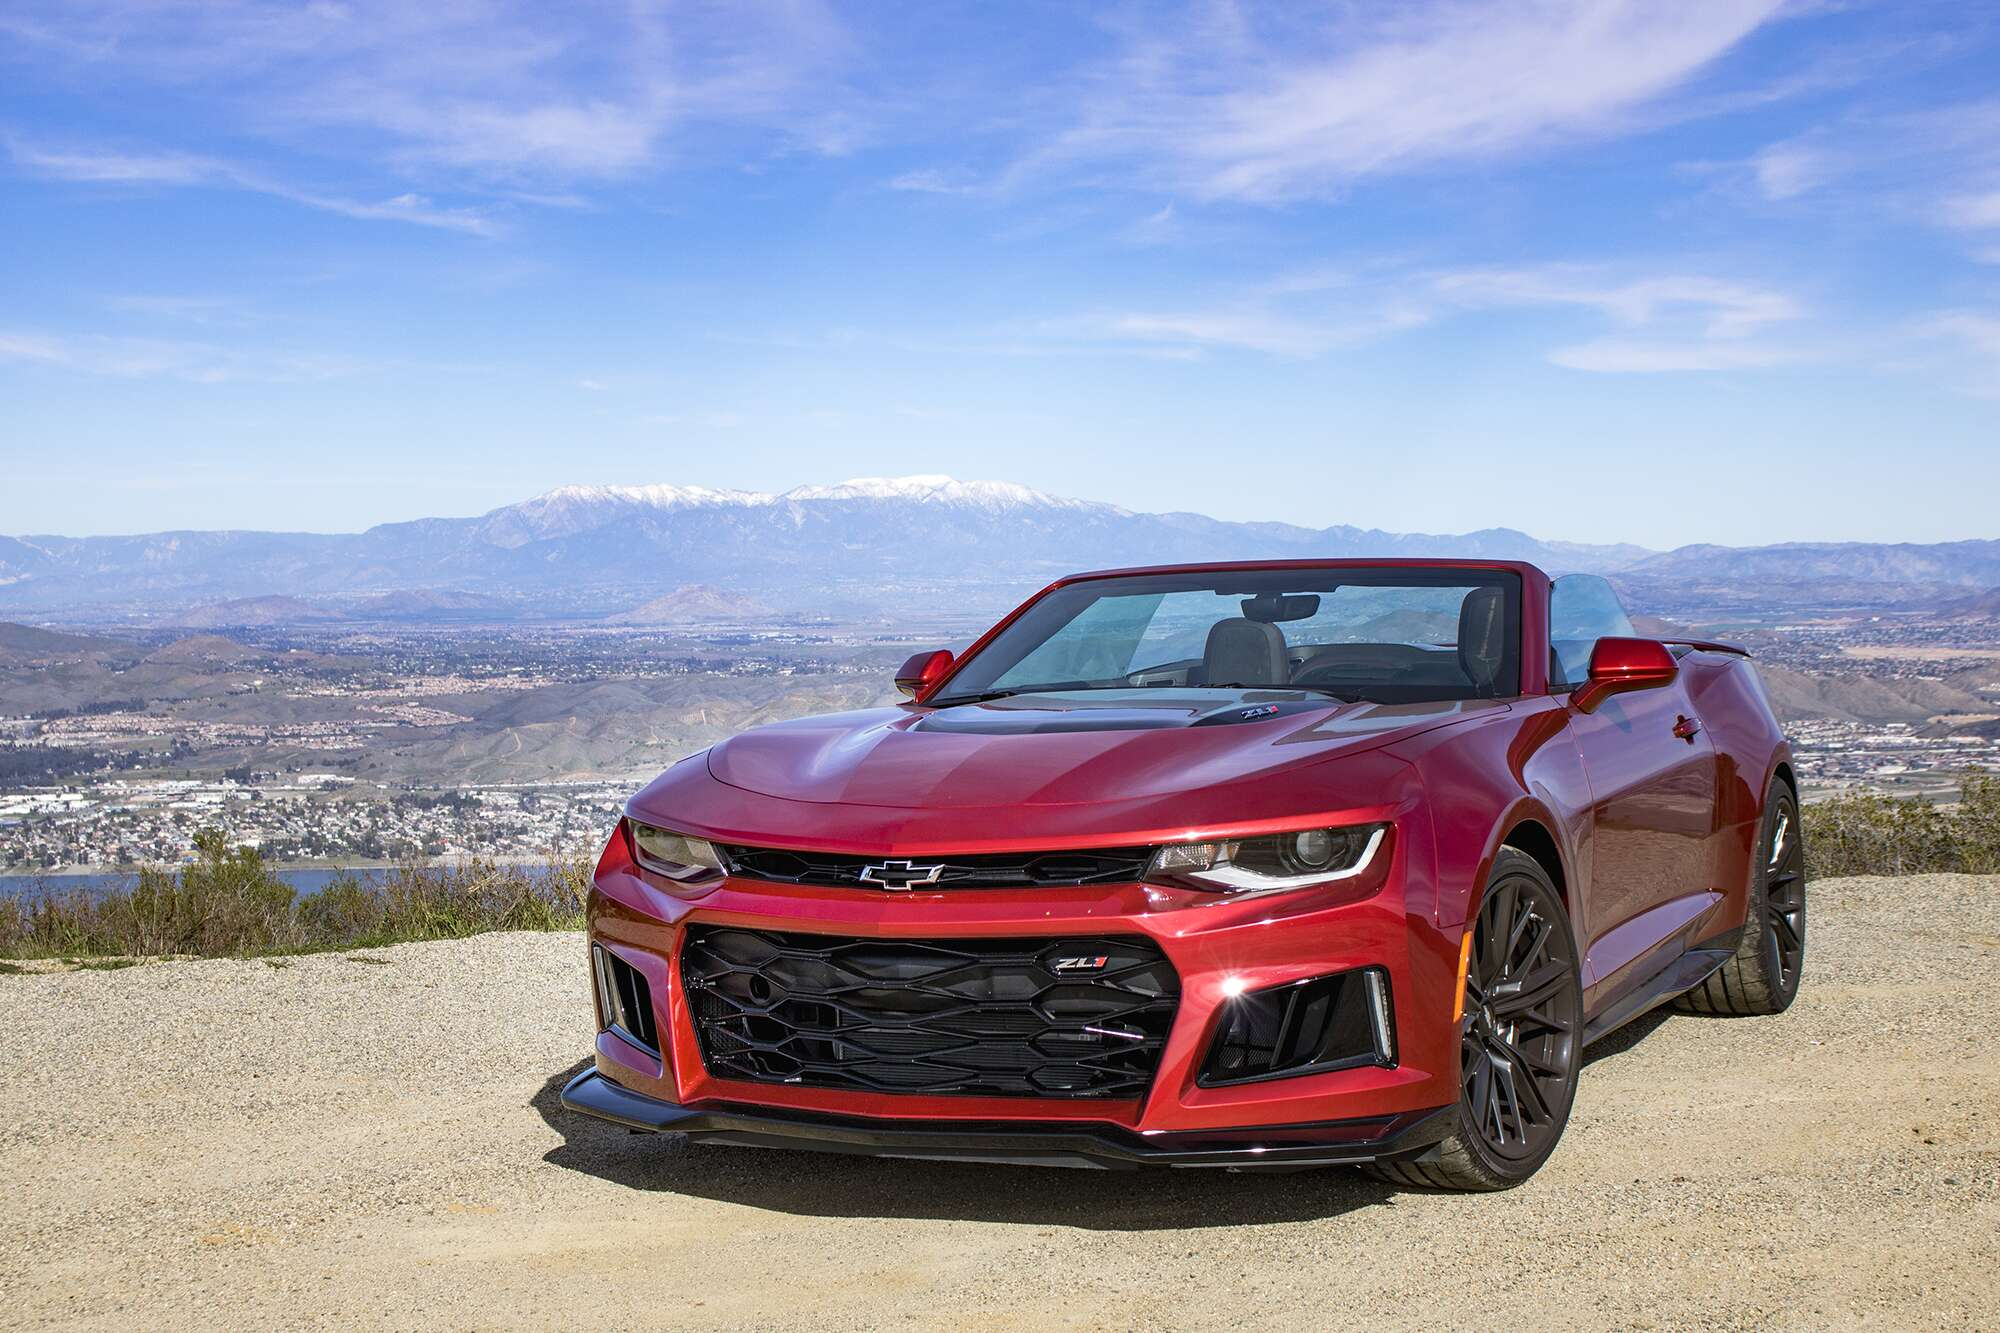 2019 Chevrolet Camaro ZL1 Convertible Review: America in a ...